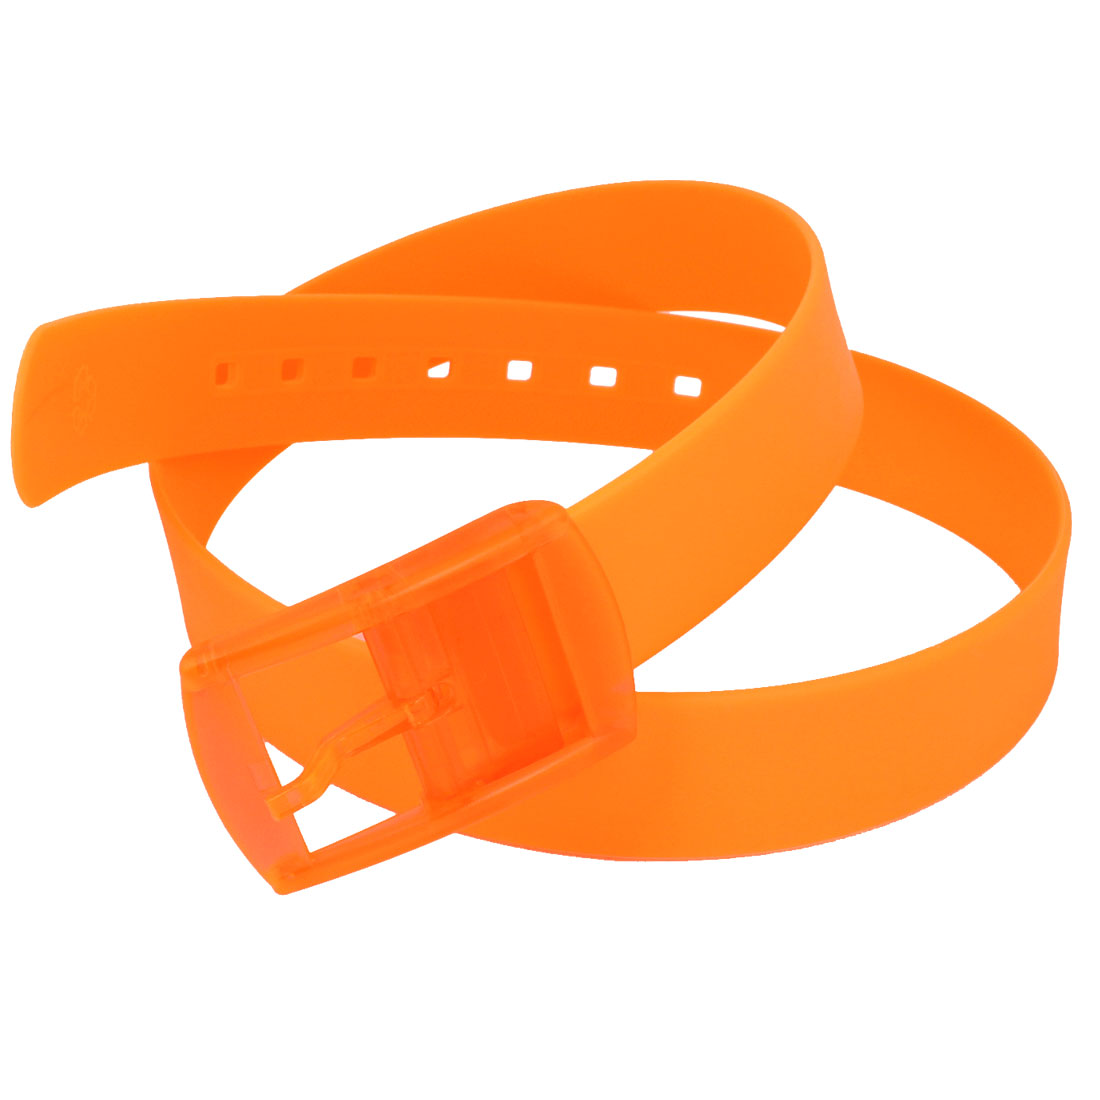 Jelly Plastic Rectangle Buckle 3.8cm Wide Sweet Smell Band Waist Belt Orange